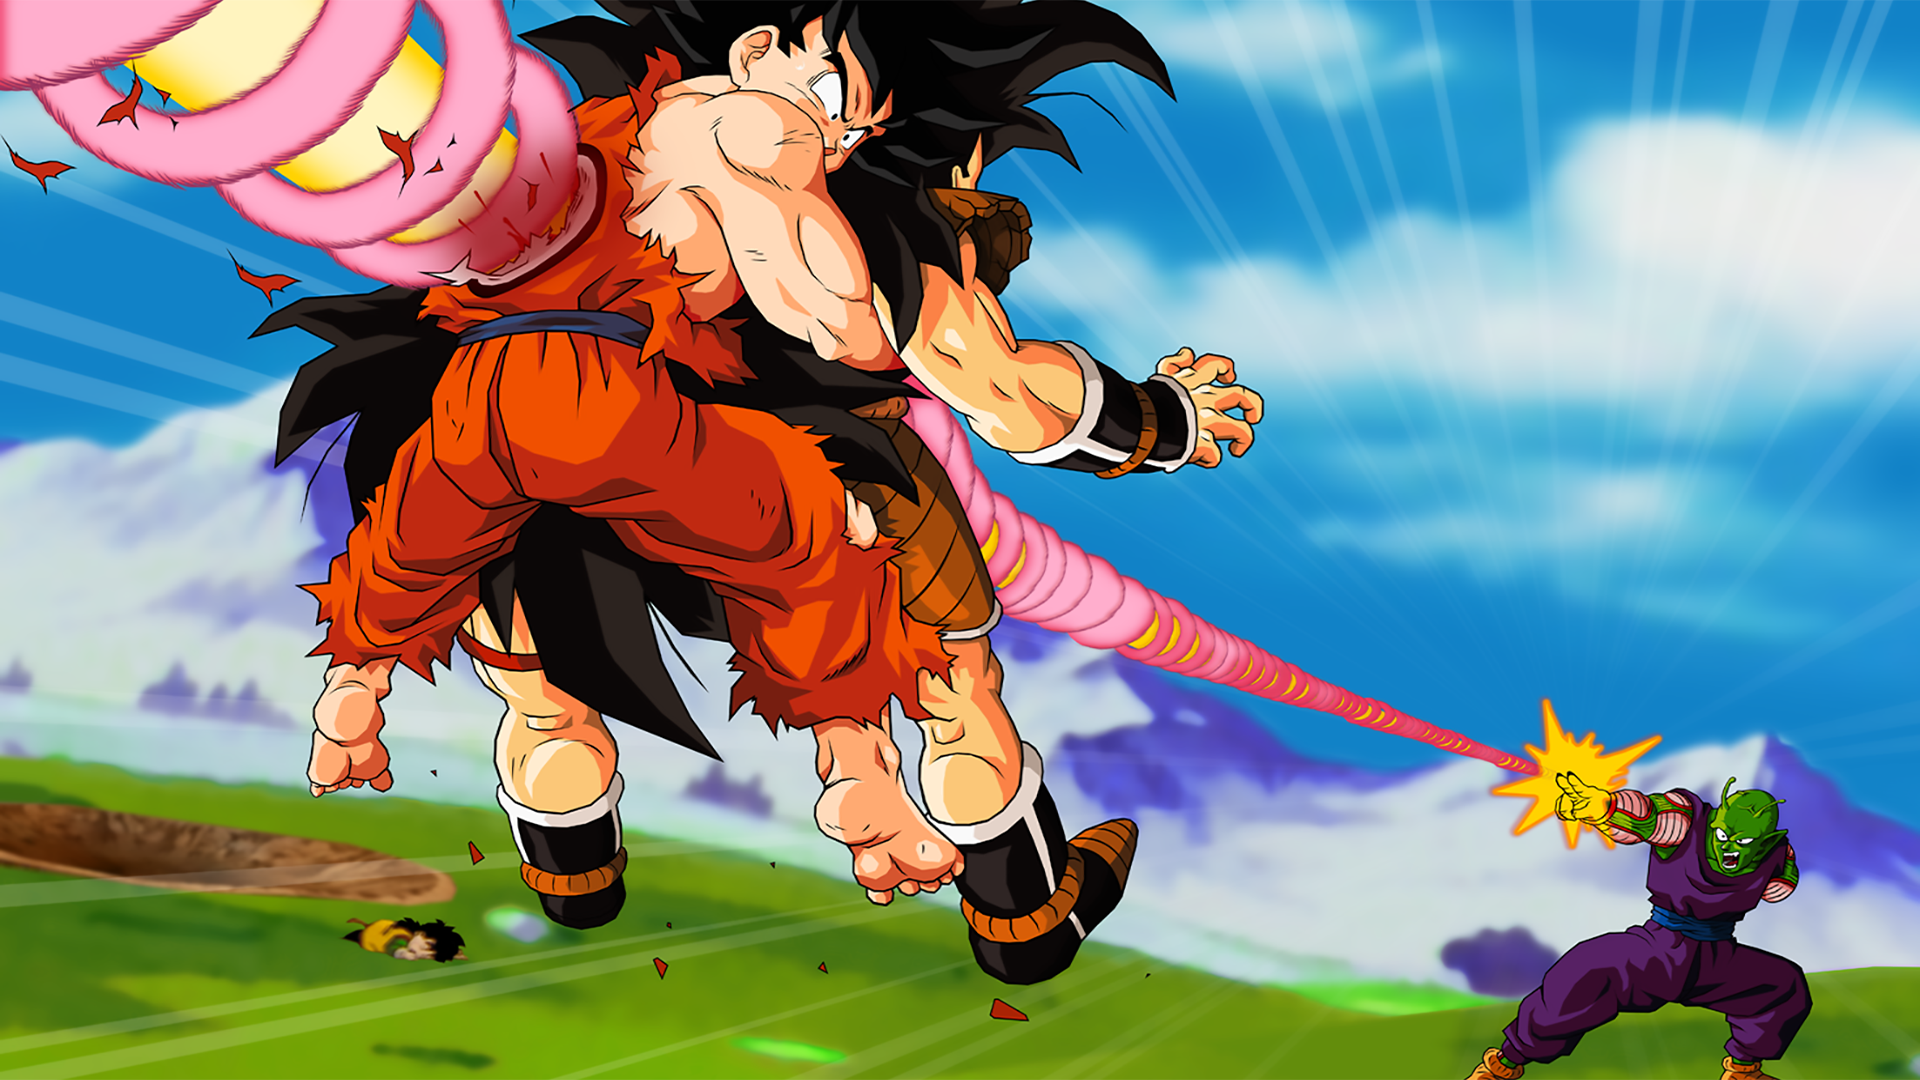 Dbz Dual Screen Wallpapers: Brothers Death Fond D'écran HD